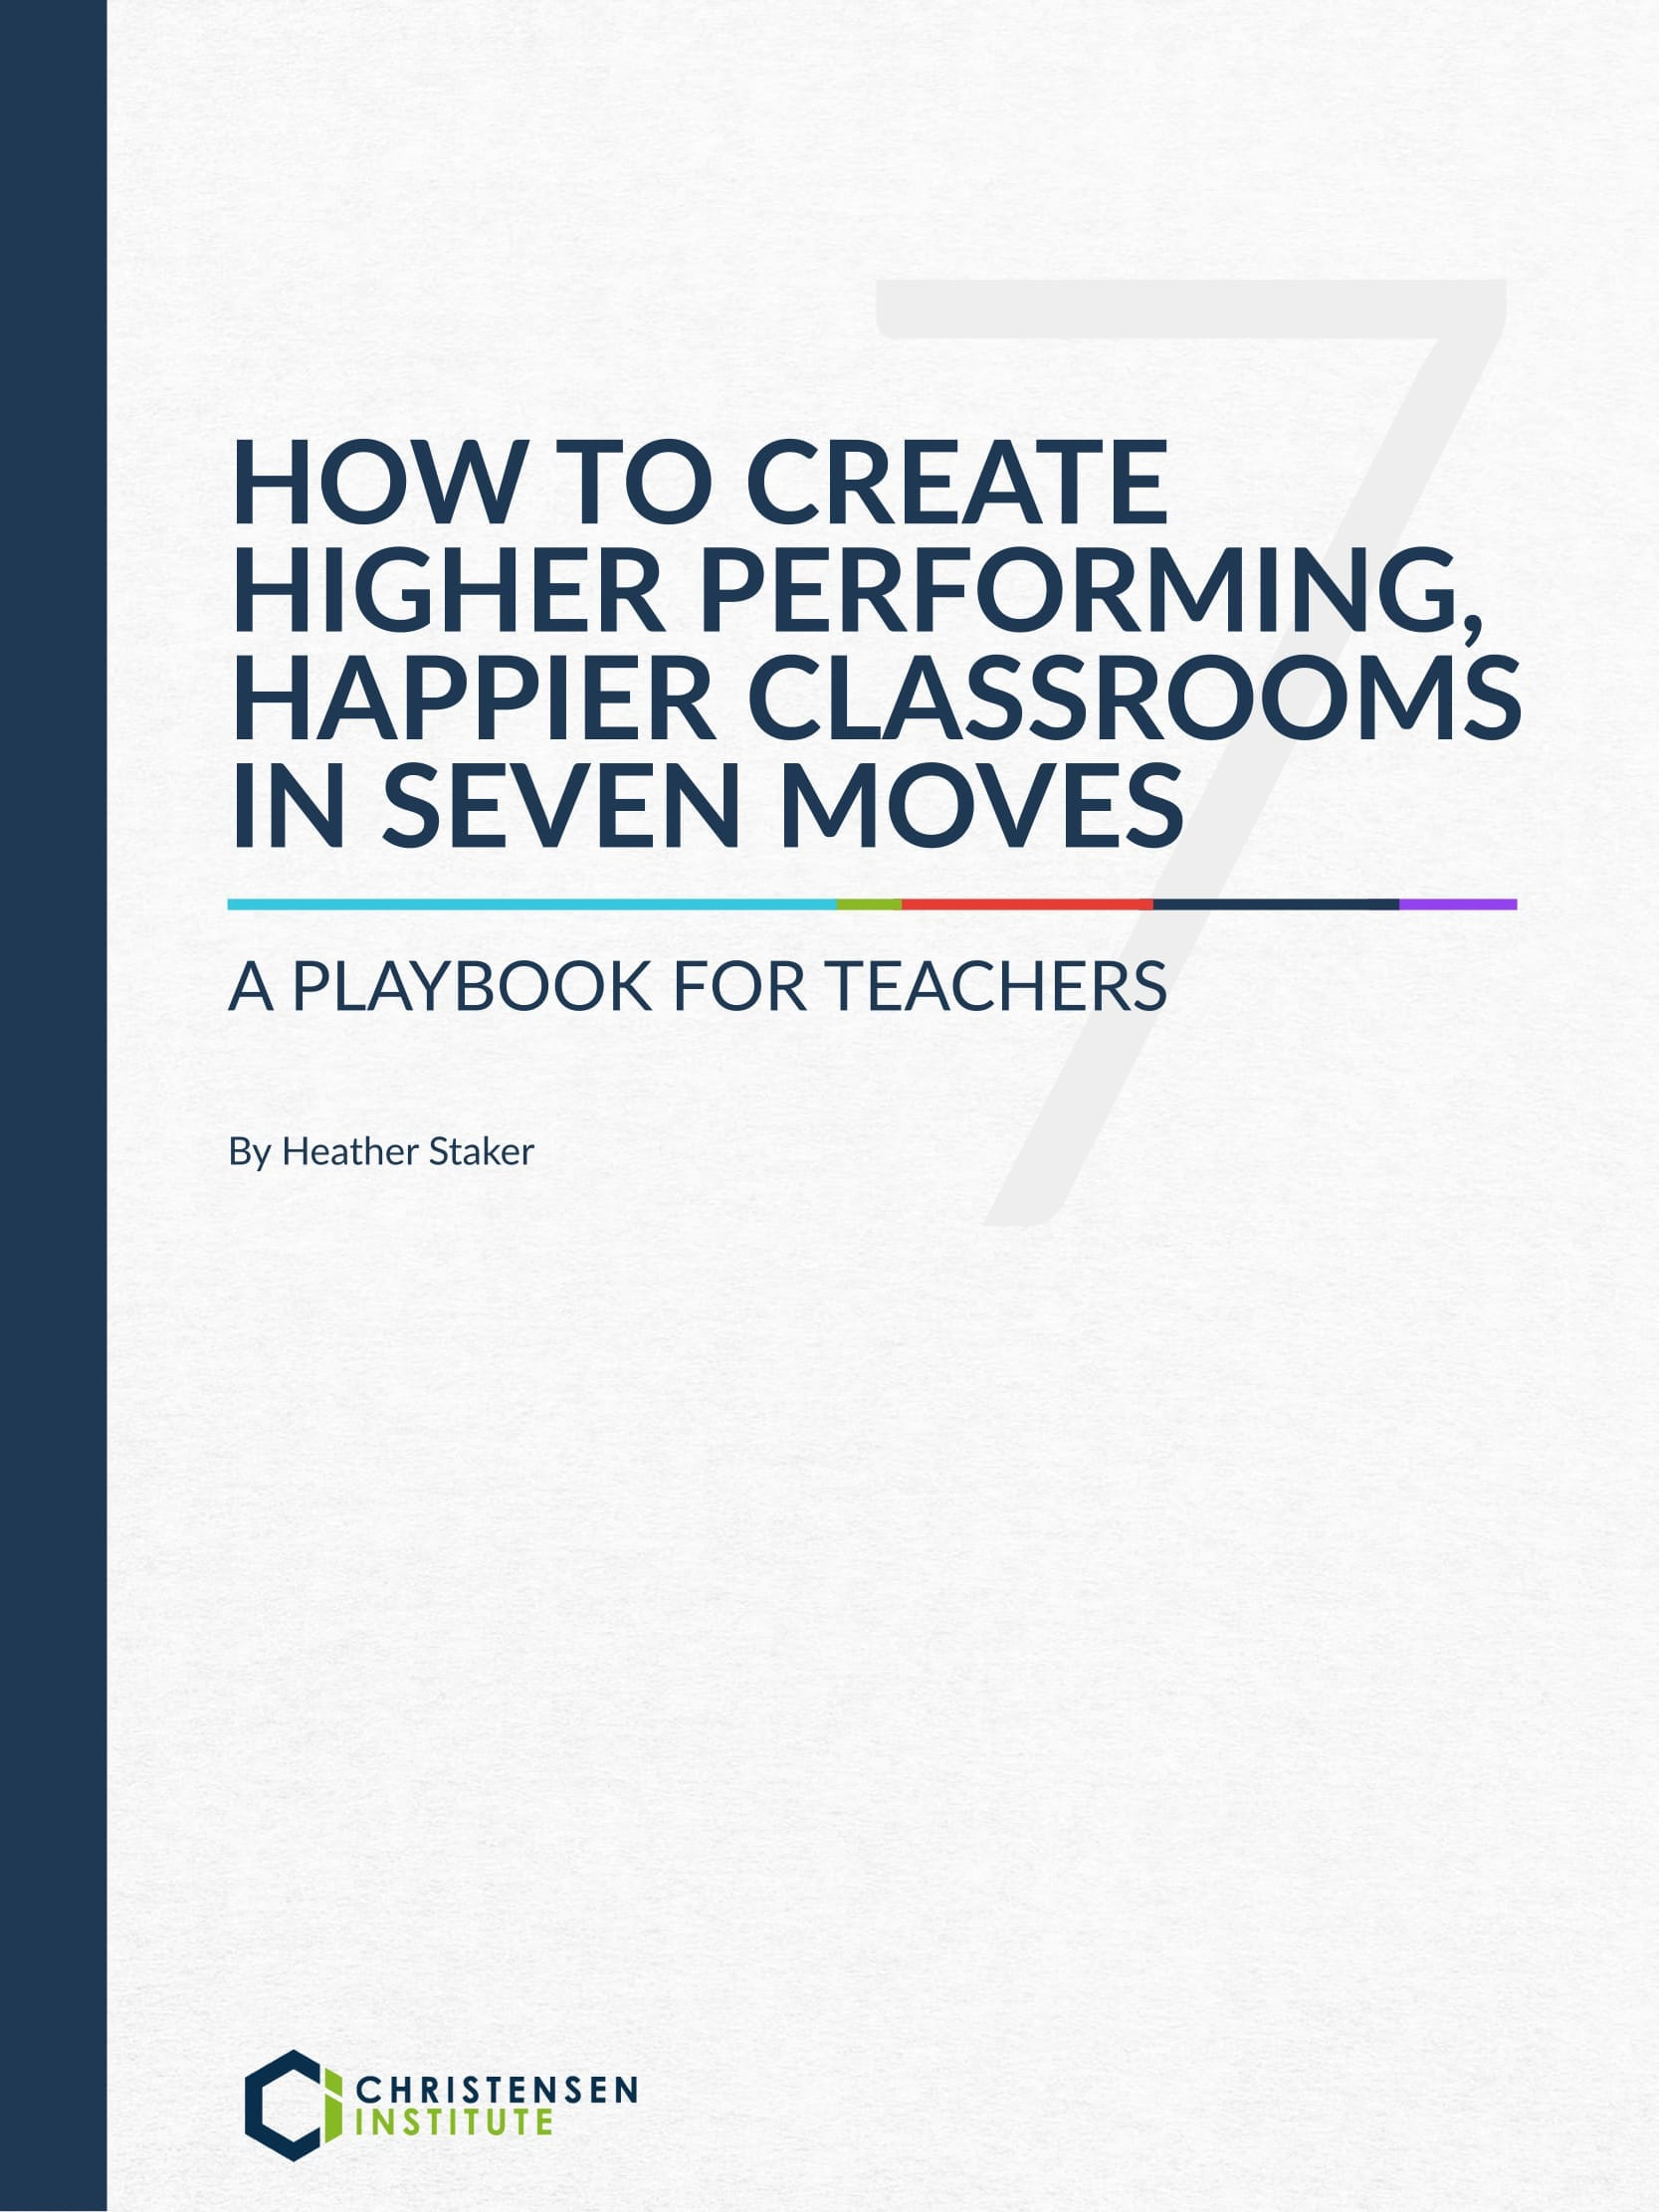 How-to-create-higher-performing-happier-classrooms-in-seven-moves.1-1